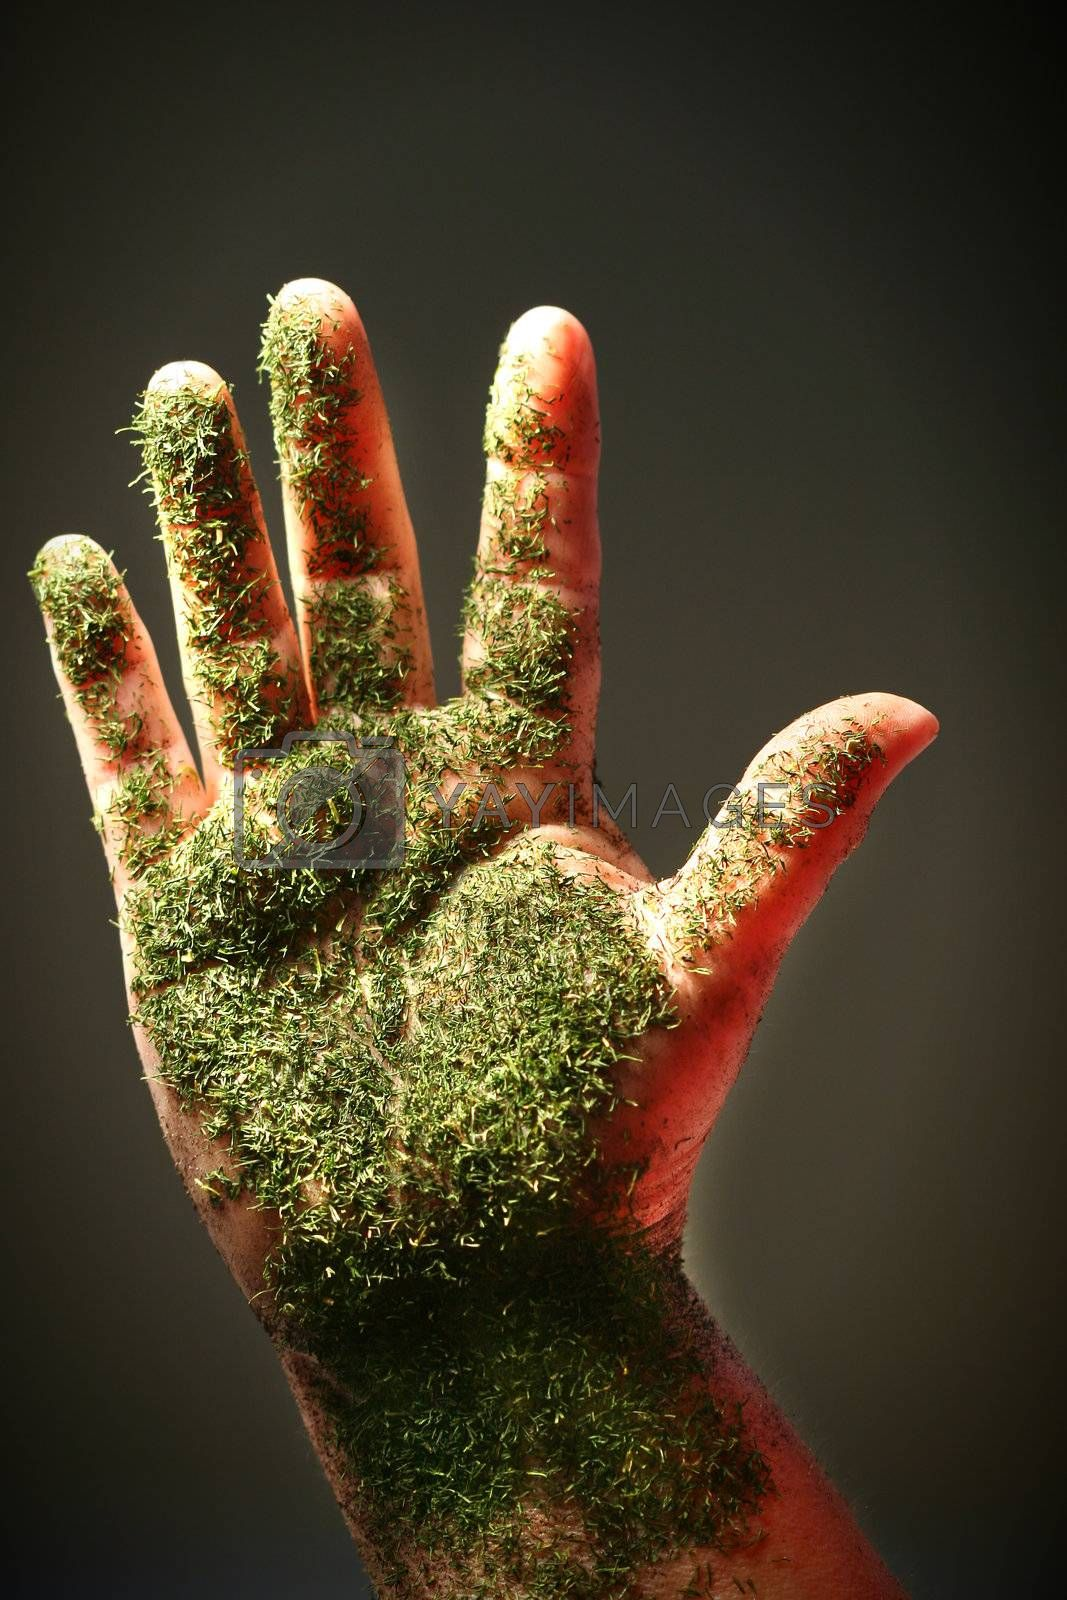 Open hand with green substance, close-up